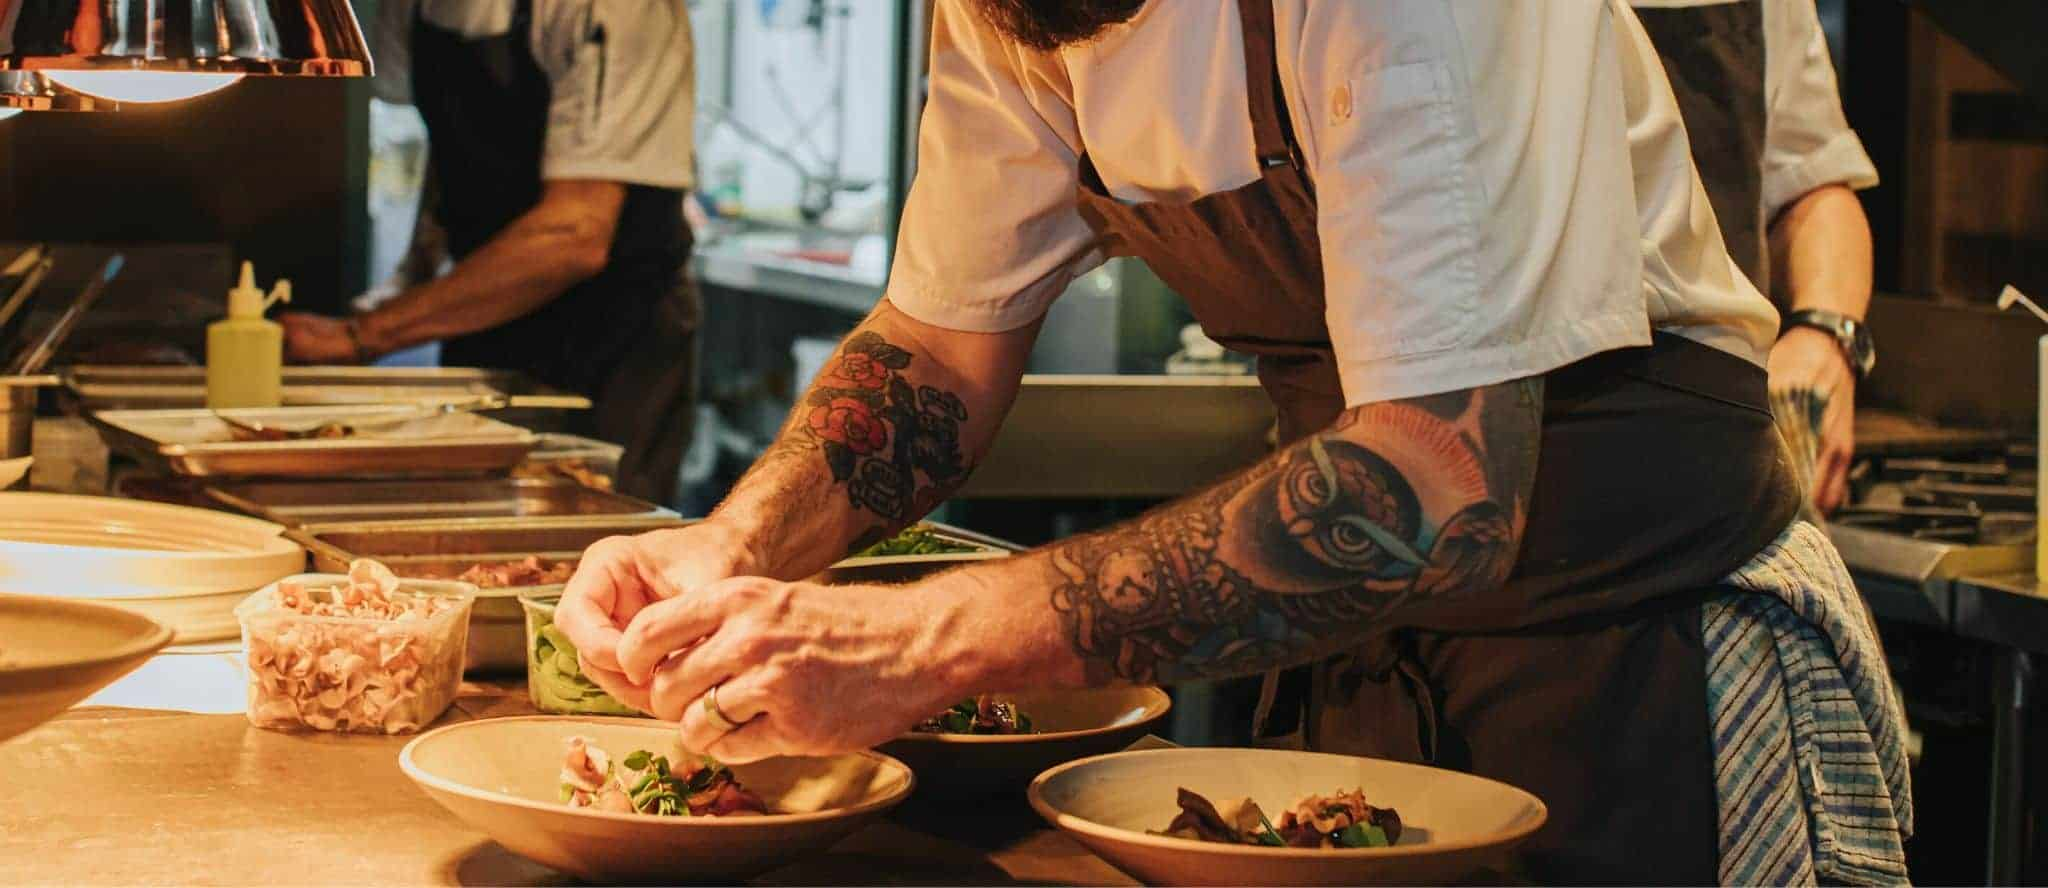 How To Support Locally Owned Tourism & Hospitality Businesses In New Zealand